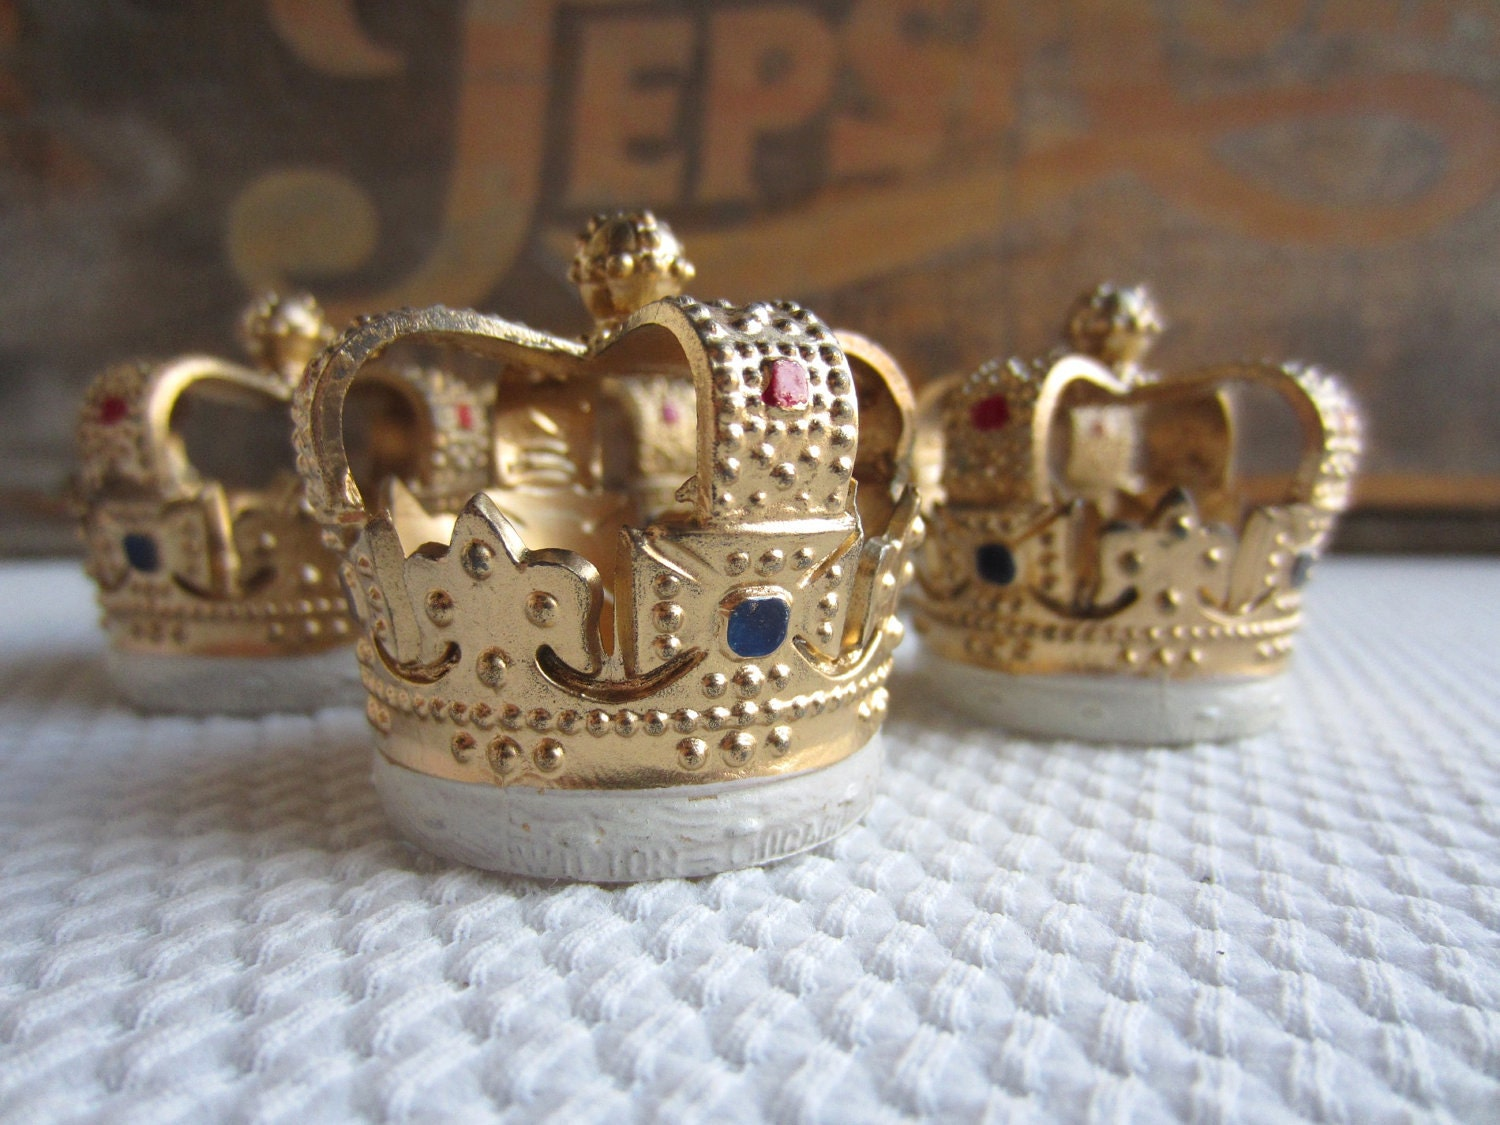 Cake Decoration Crown : Vintage Royal Crown Cake Decorations Cupcake Topper Wilton set